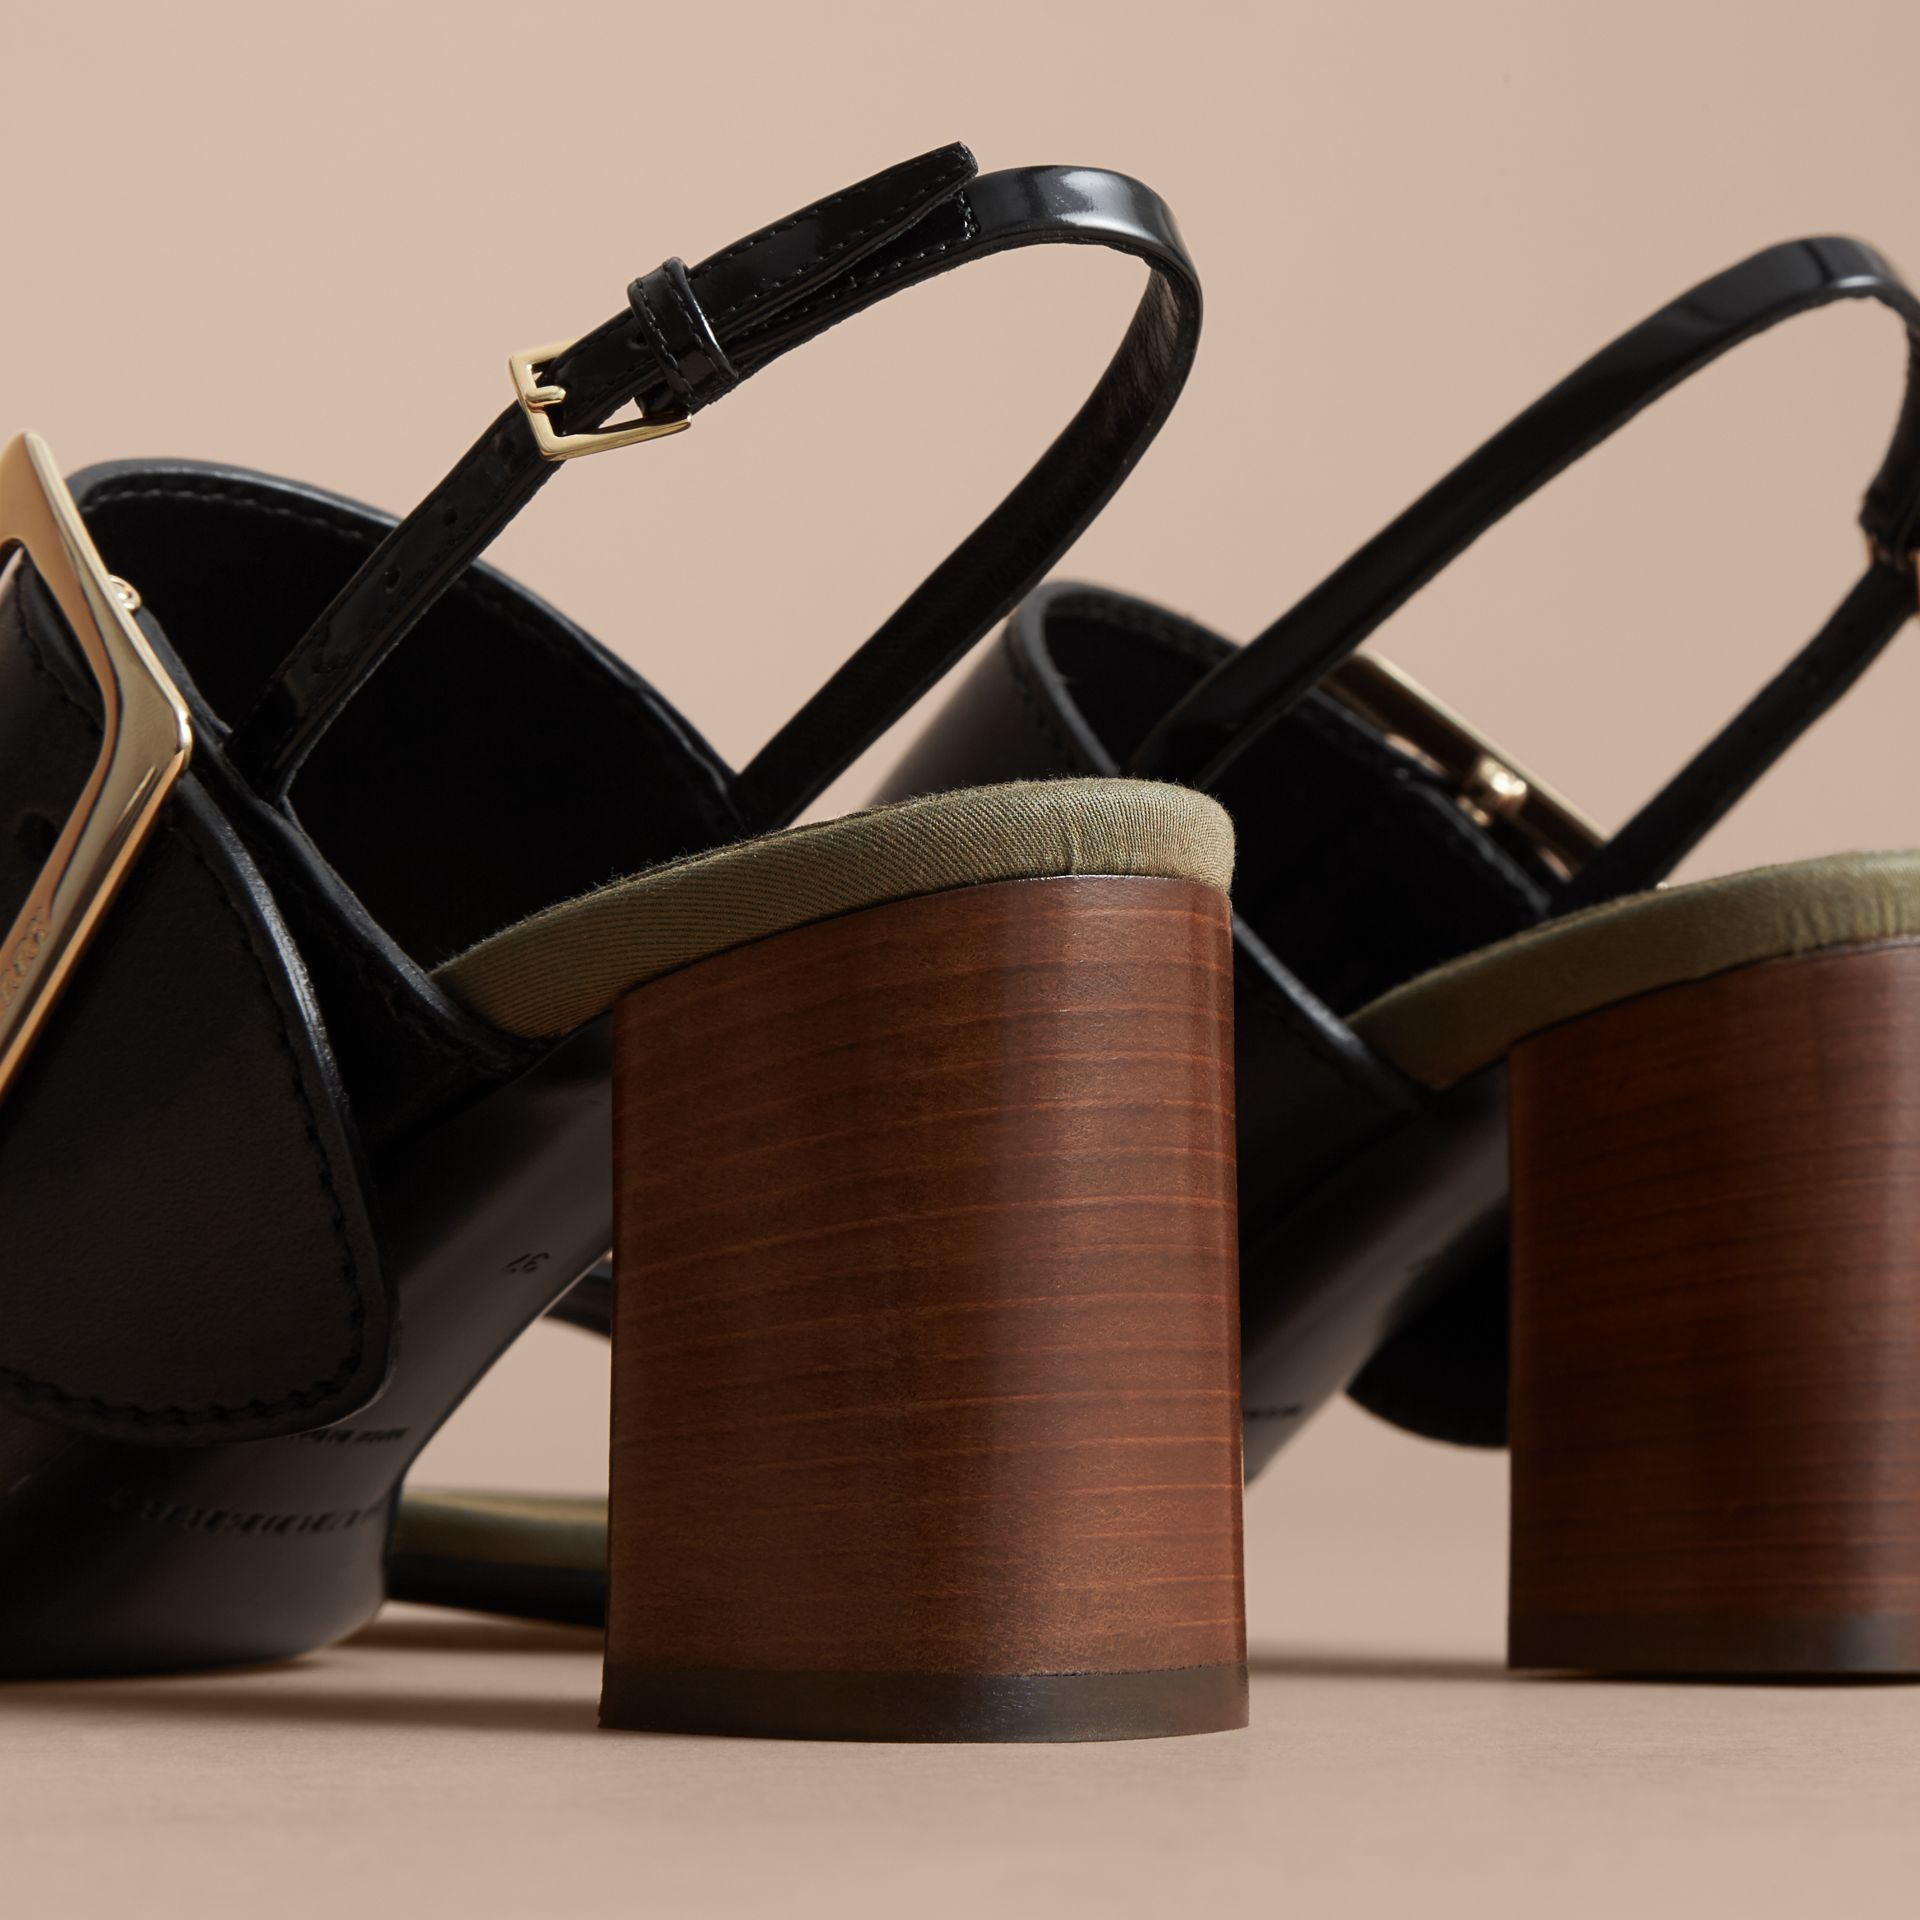 Buckle Detail Leather Sandals in Black - Women | Burberry Canada - gallery image 4